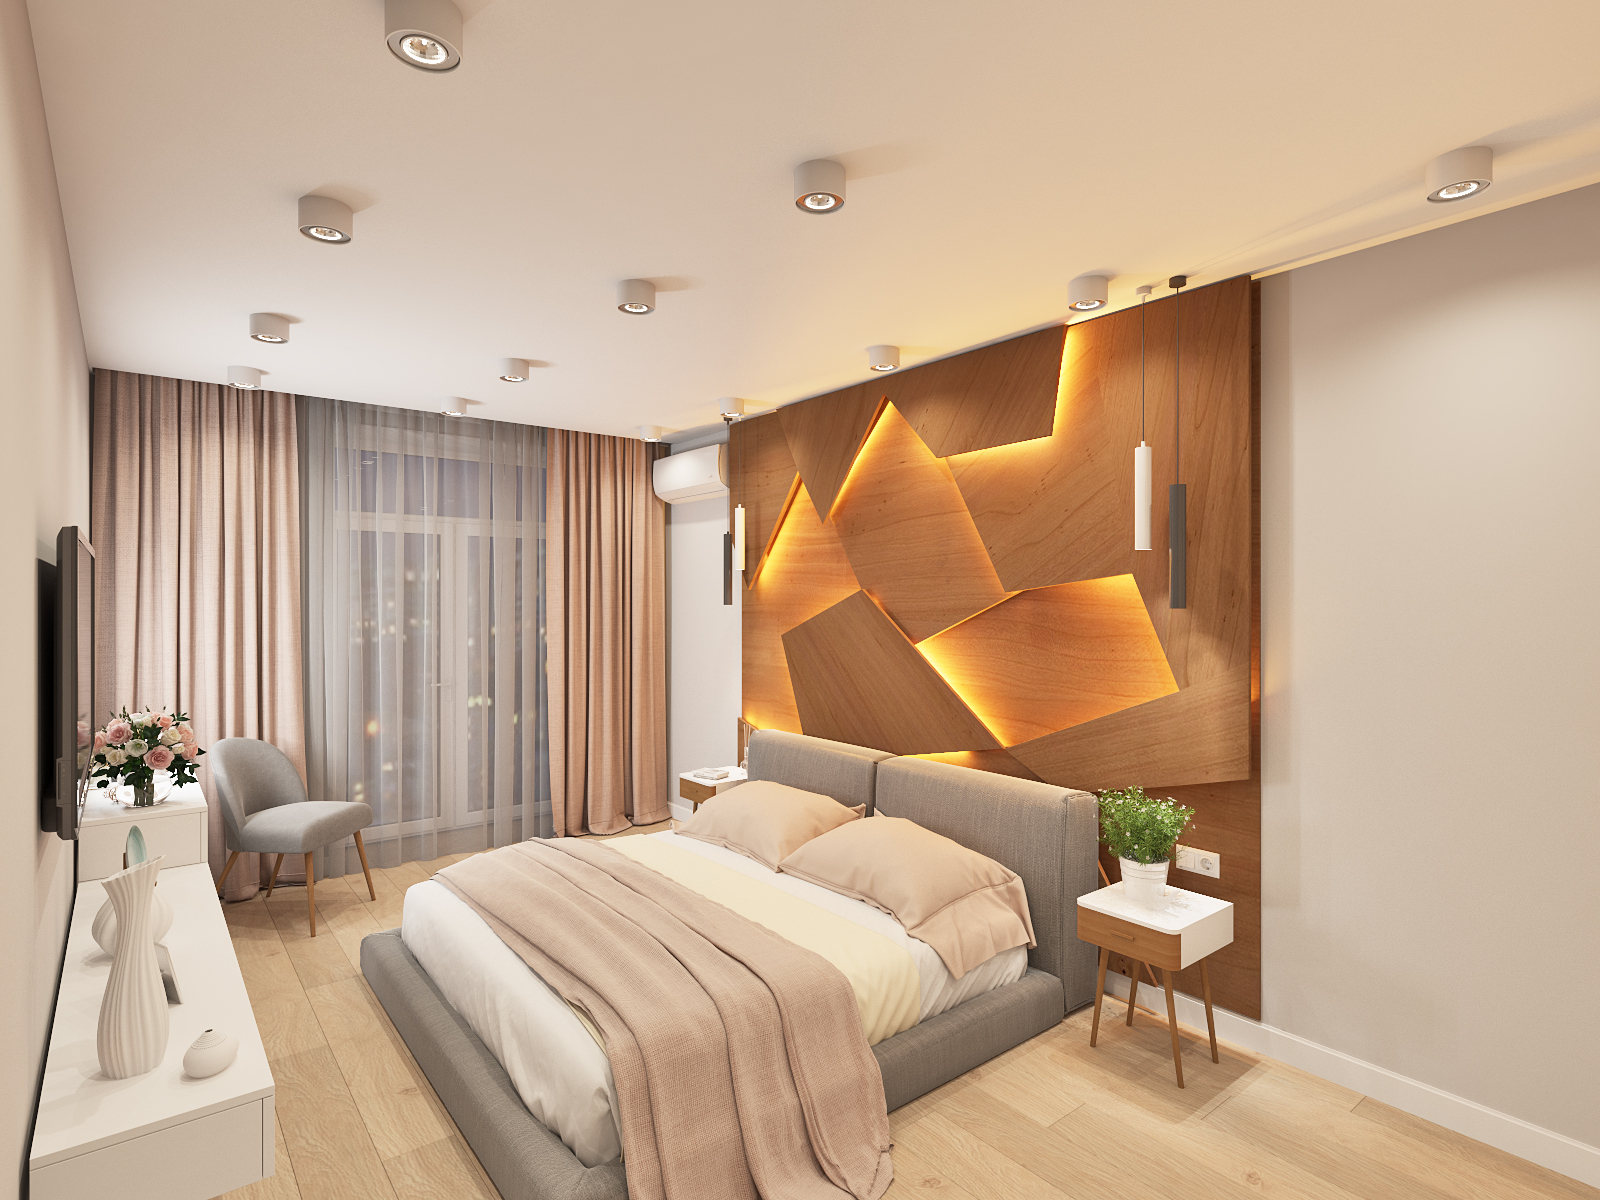 Bedroom-renders-7